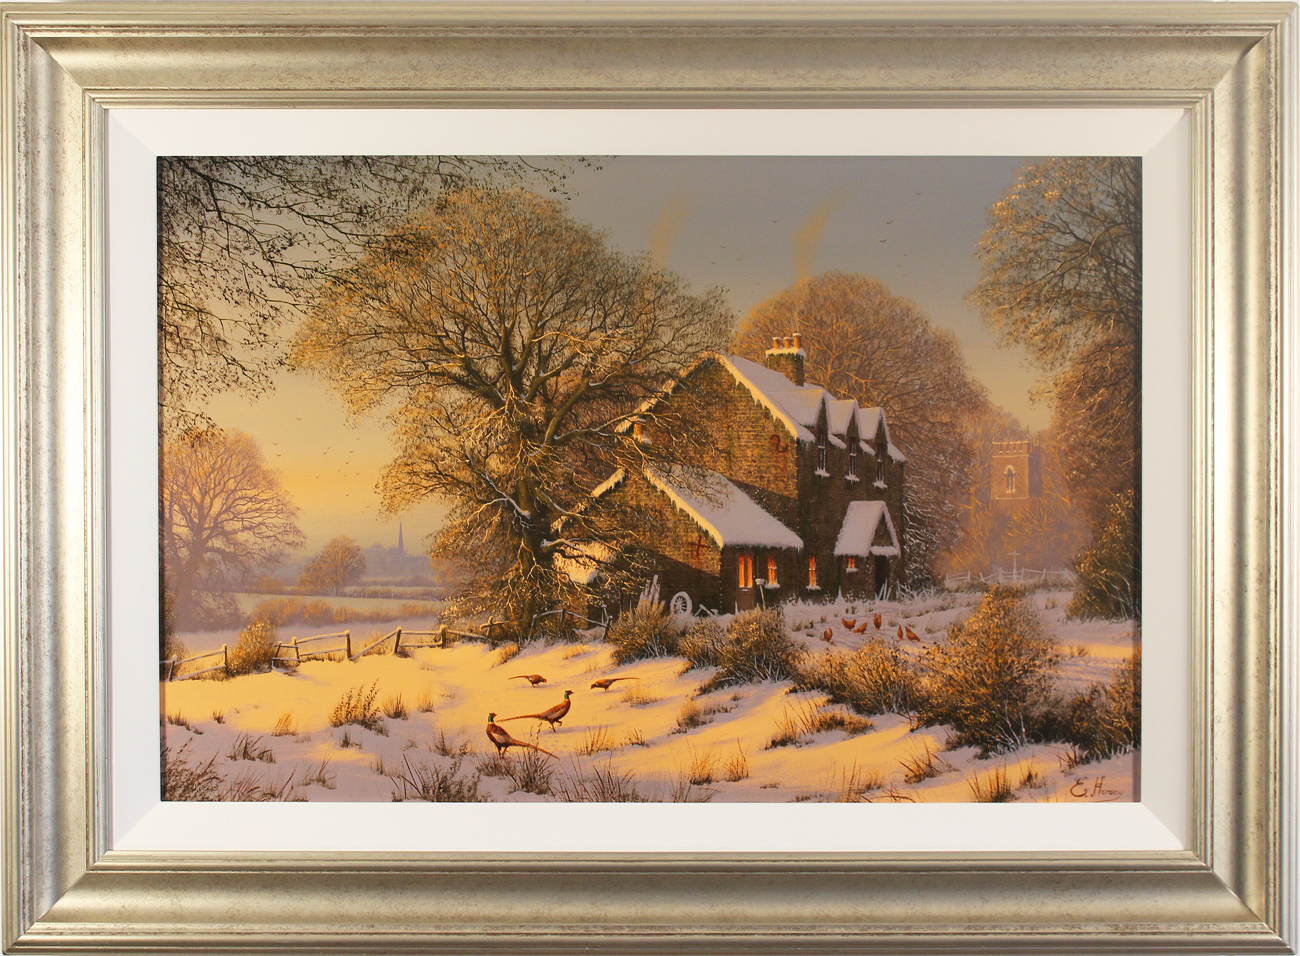 Edward Hersey, Original oil painting on canvas, Afternoon Glow, Yorkshire Dales, click to enlarge